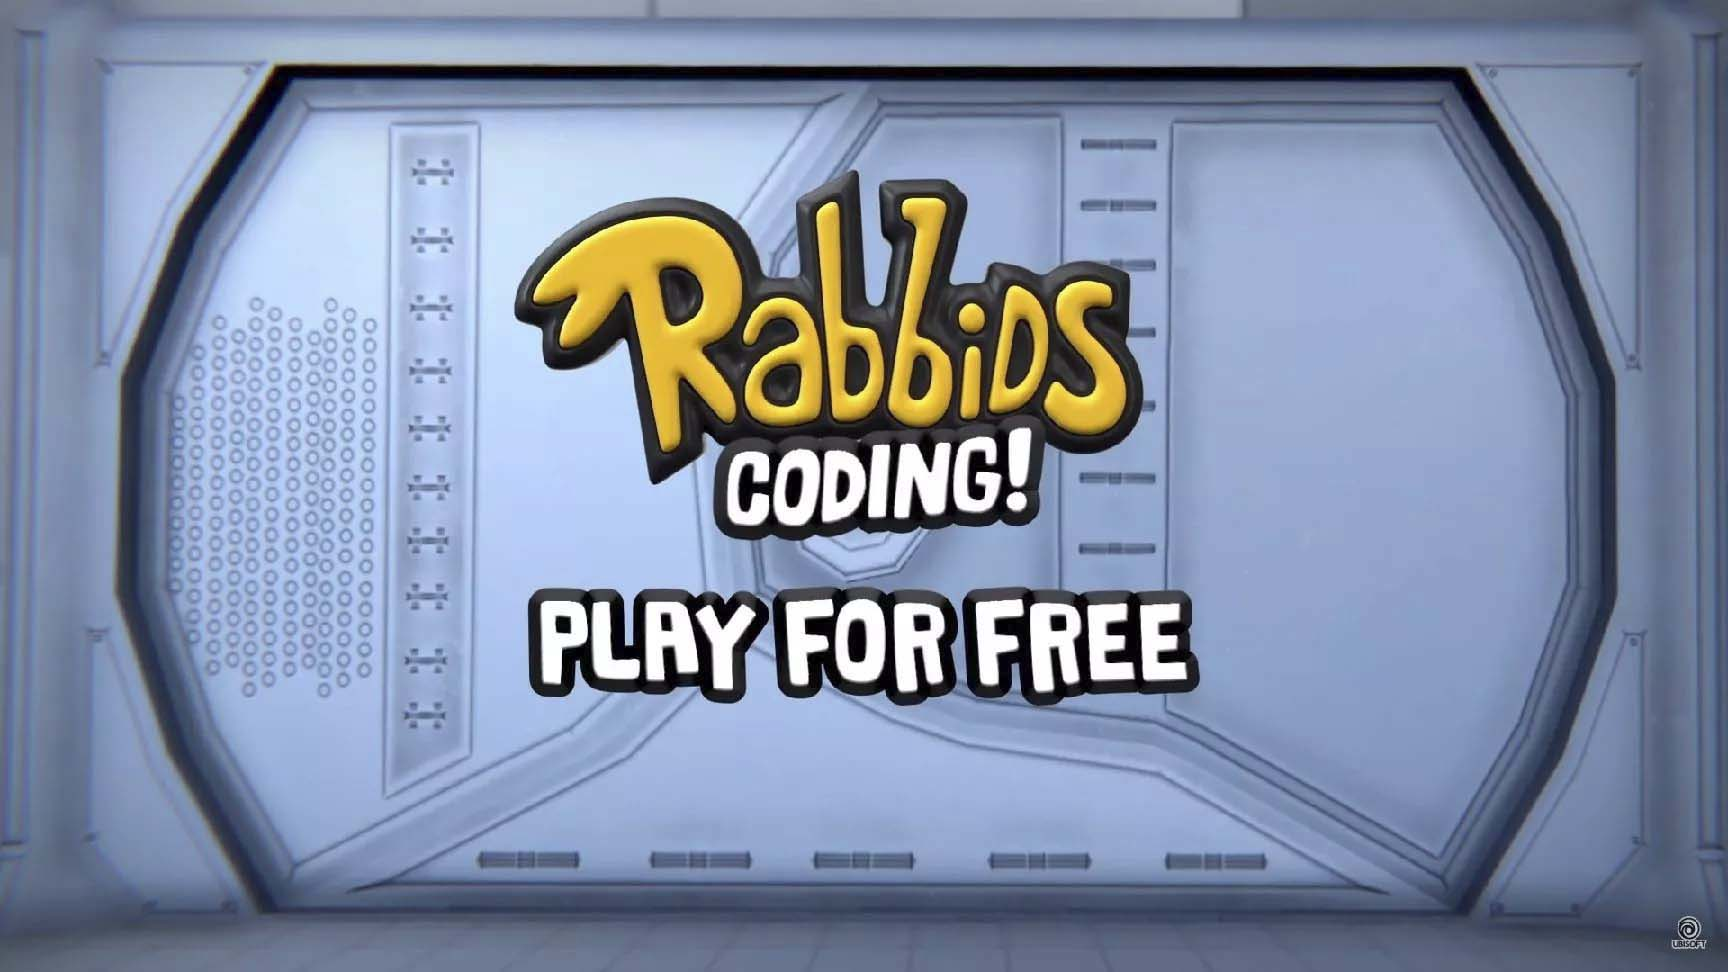 Free Games for #Covid19: Uplay Rabbids Coding Giveaway